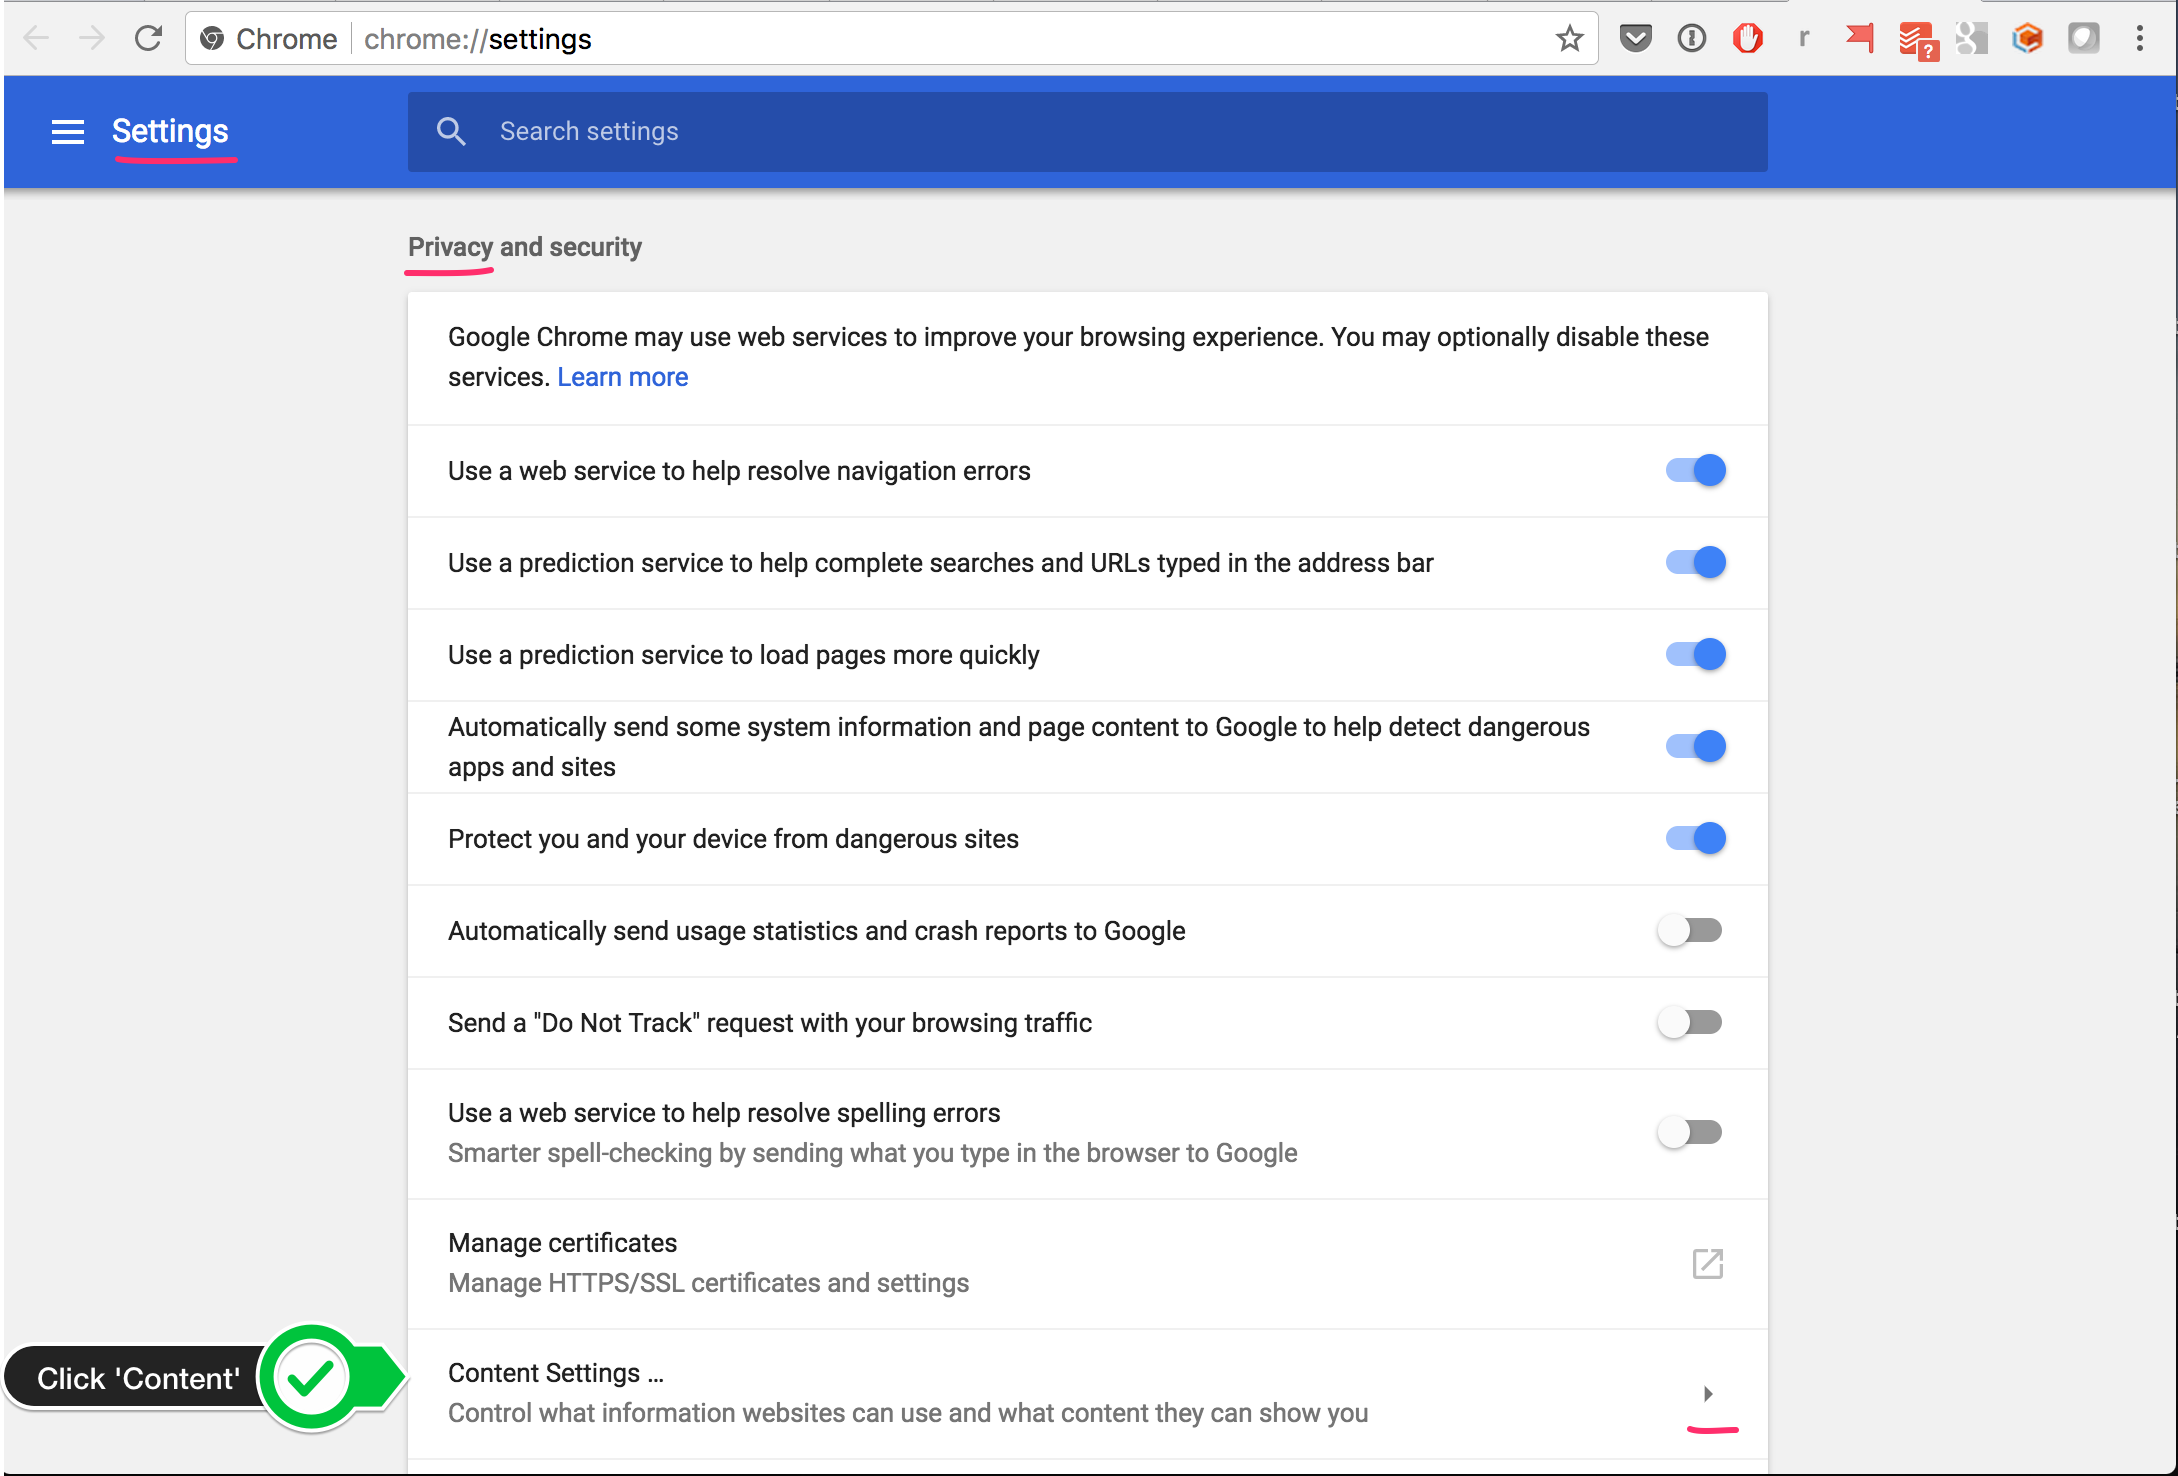 Chrome-settings-content.png